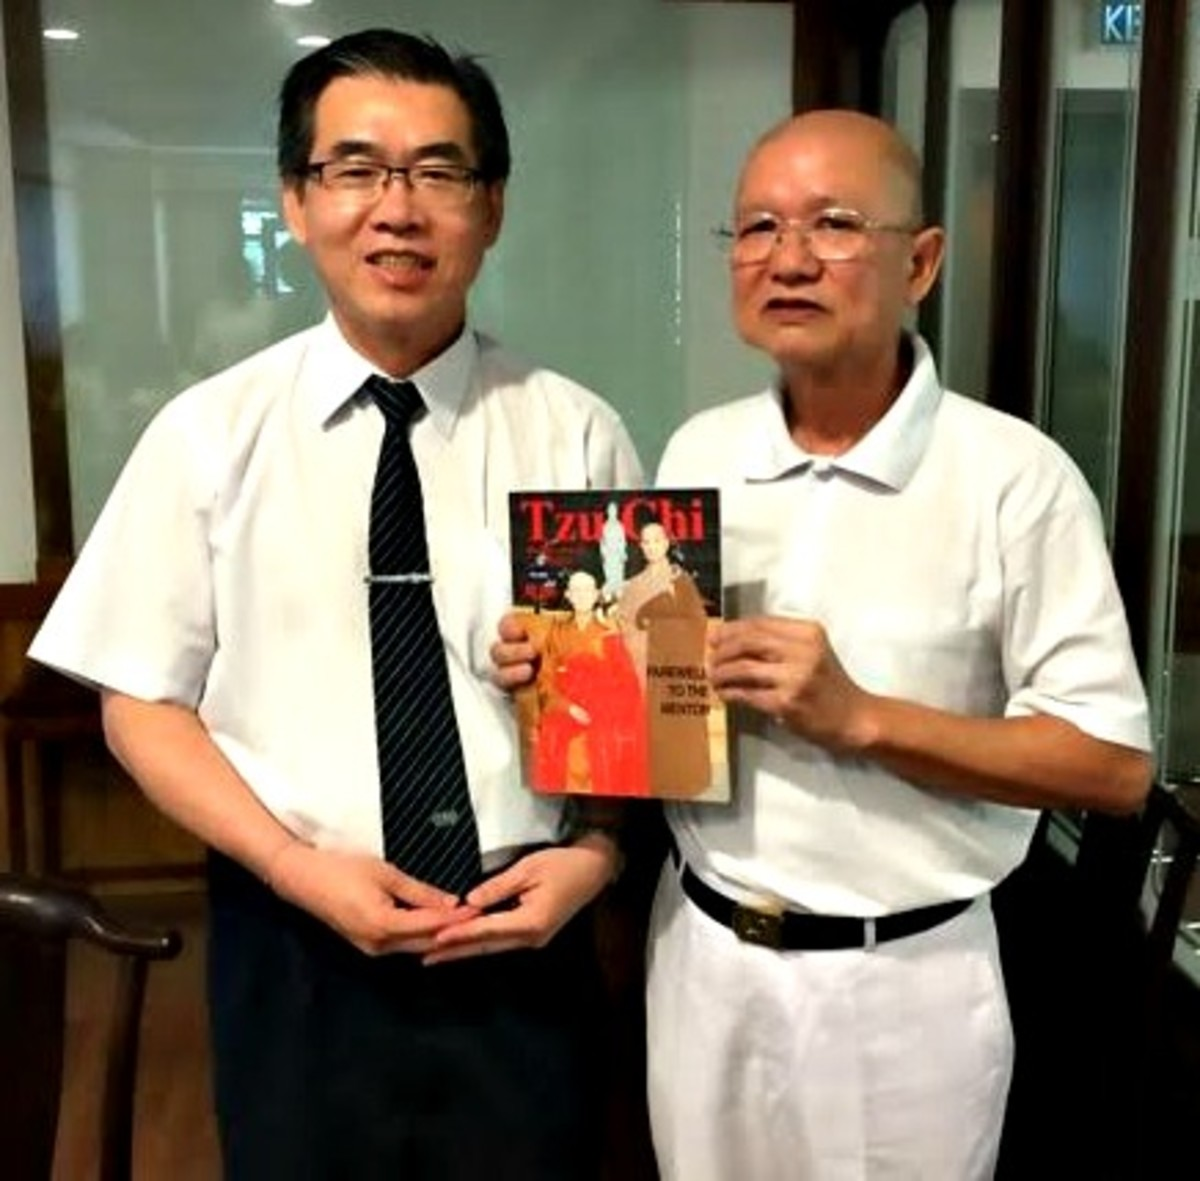 Good Guy with Tzu Chi Brother Minghai.  It was at his office 10 years ago that I read this particular Magazine. Photo taken recently on Nov 19, 2016 at the Tzu Chi's Penang Center.